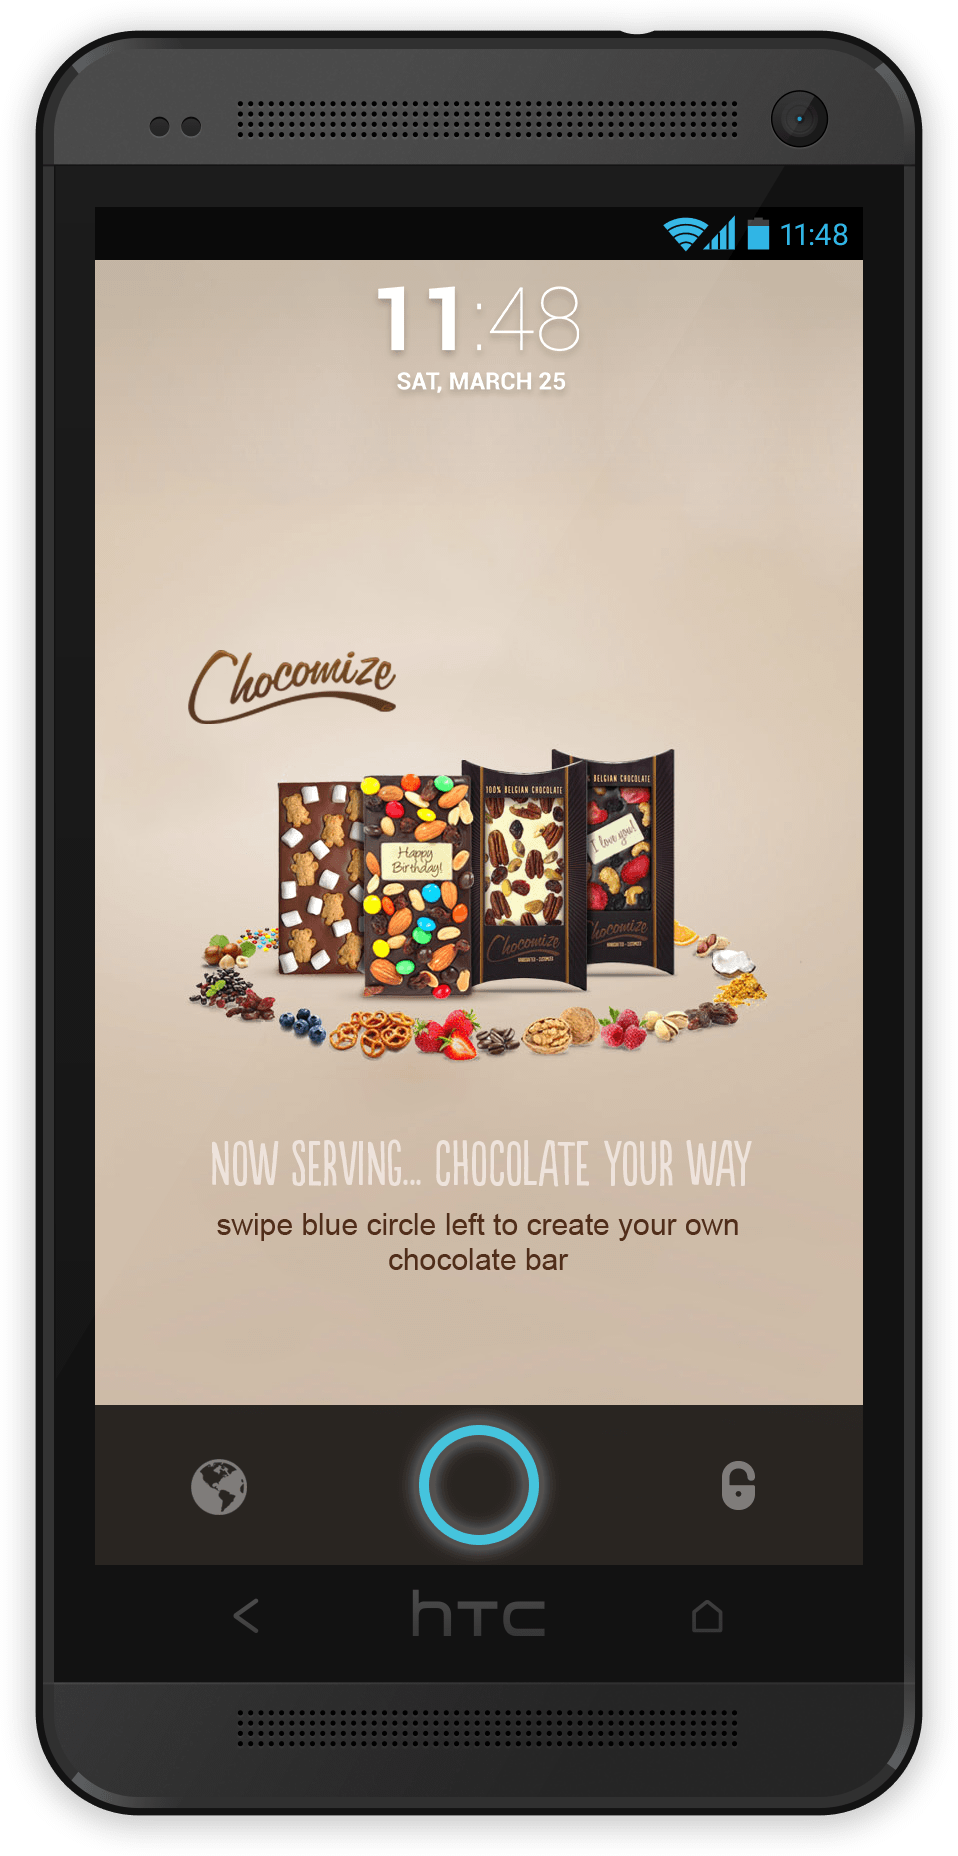 Chocomize Ad Creative